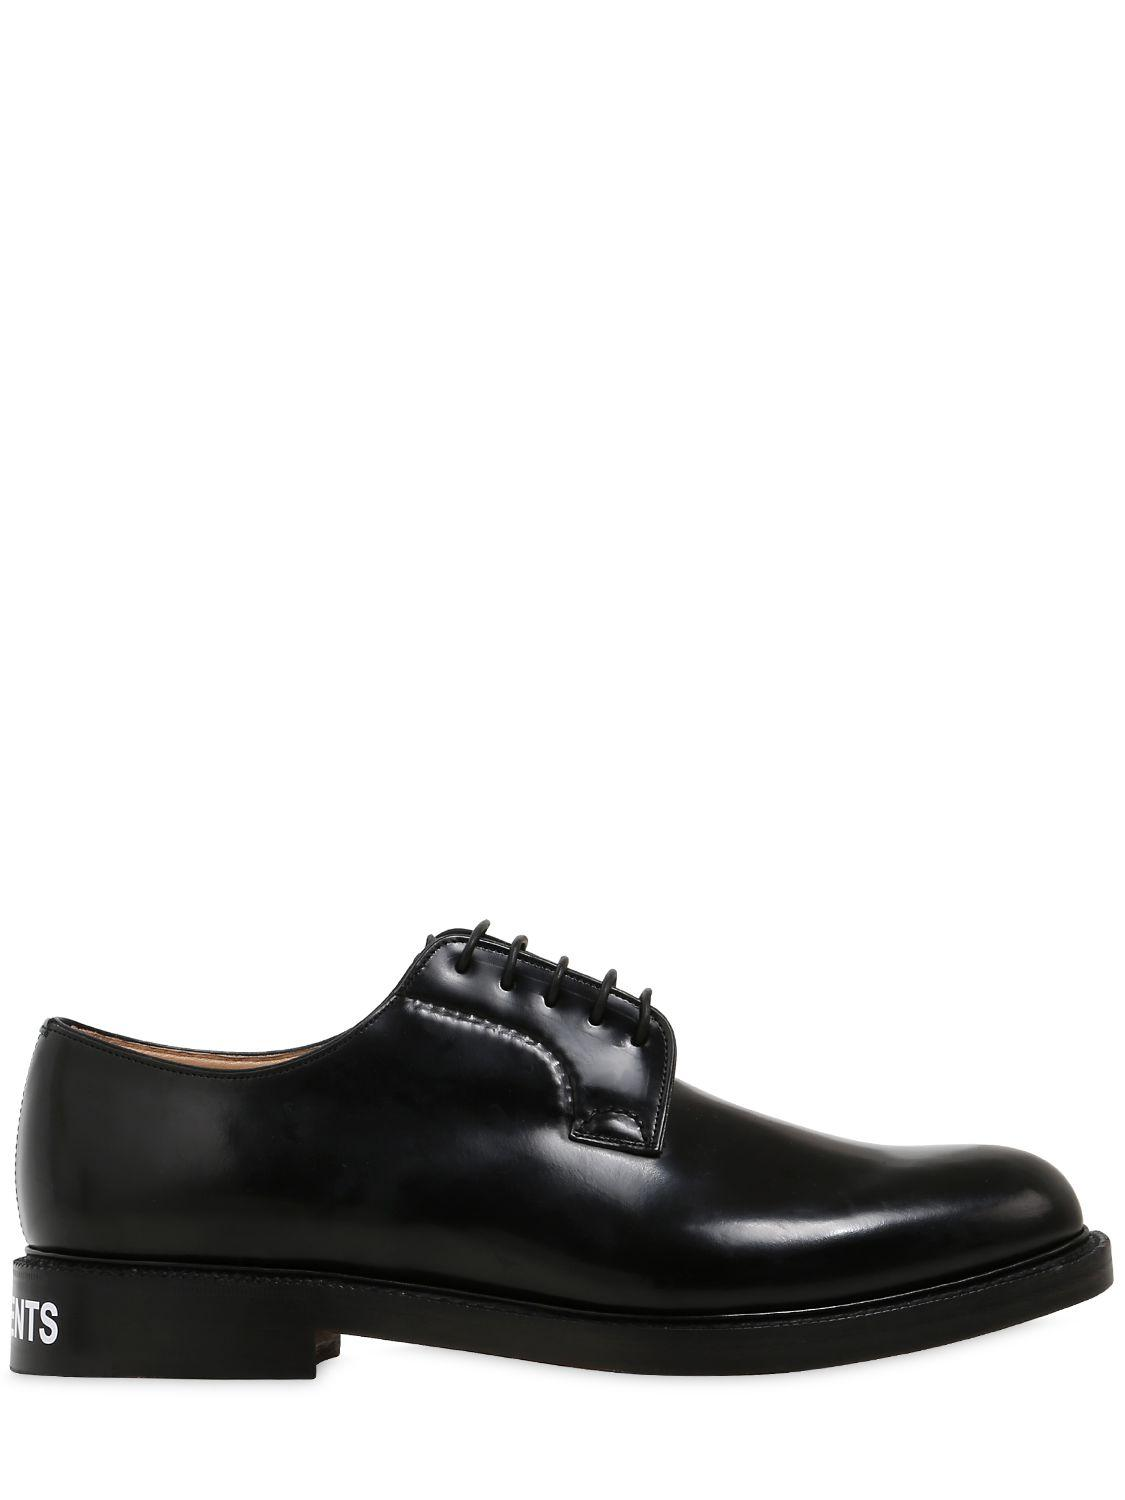 Leather Laceup Avery Shoes